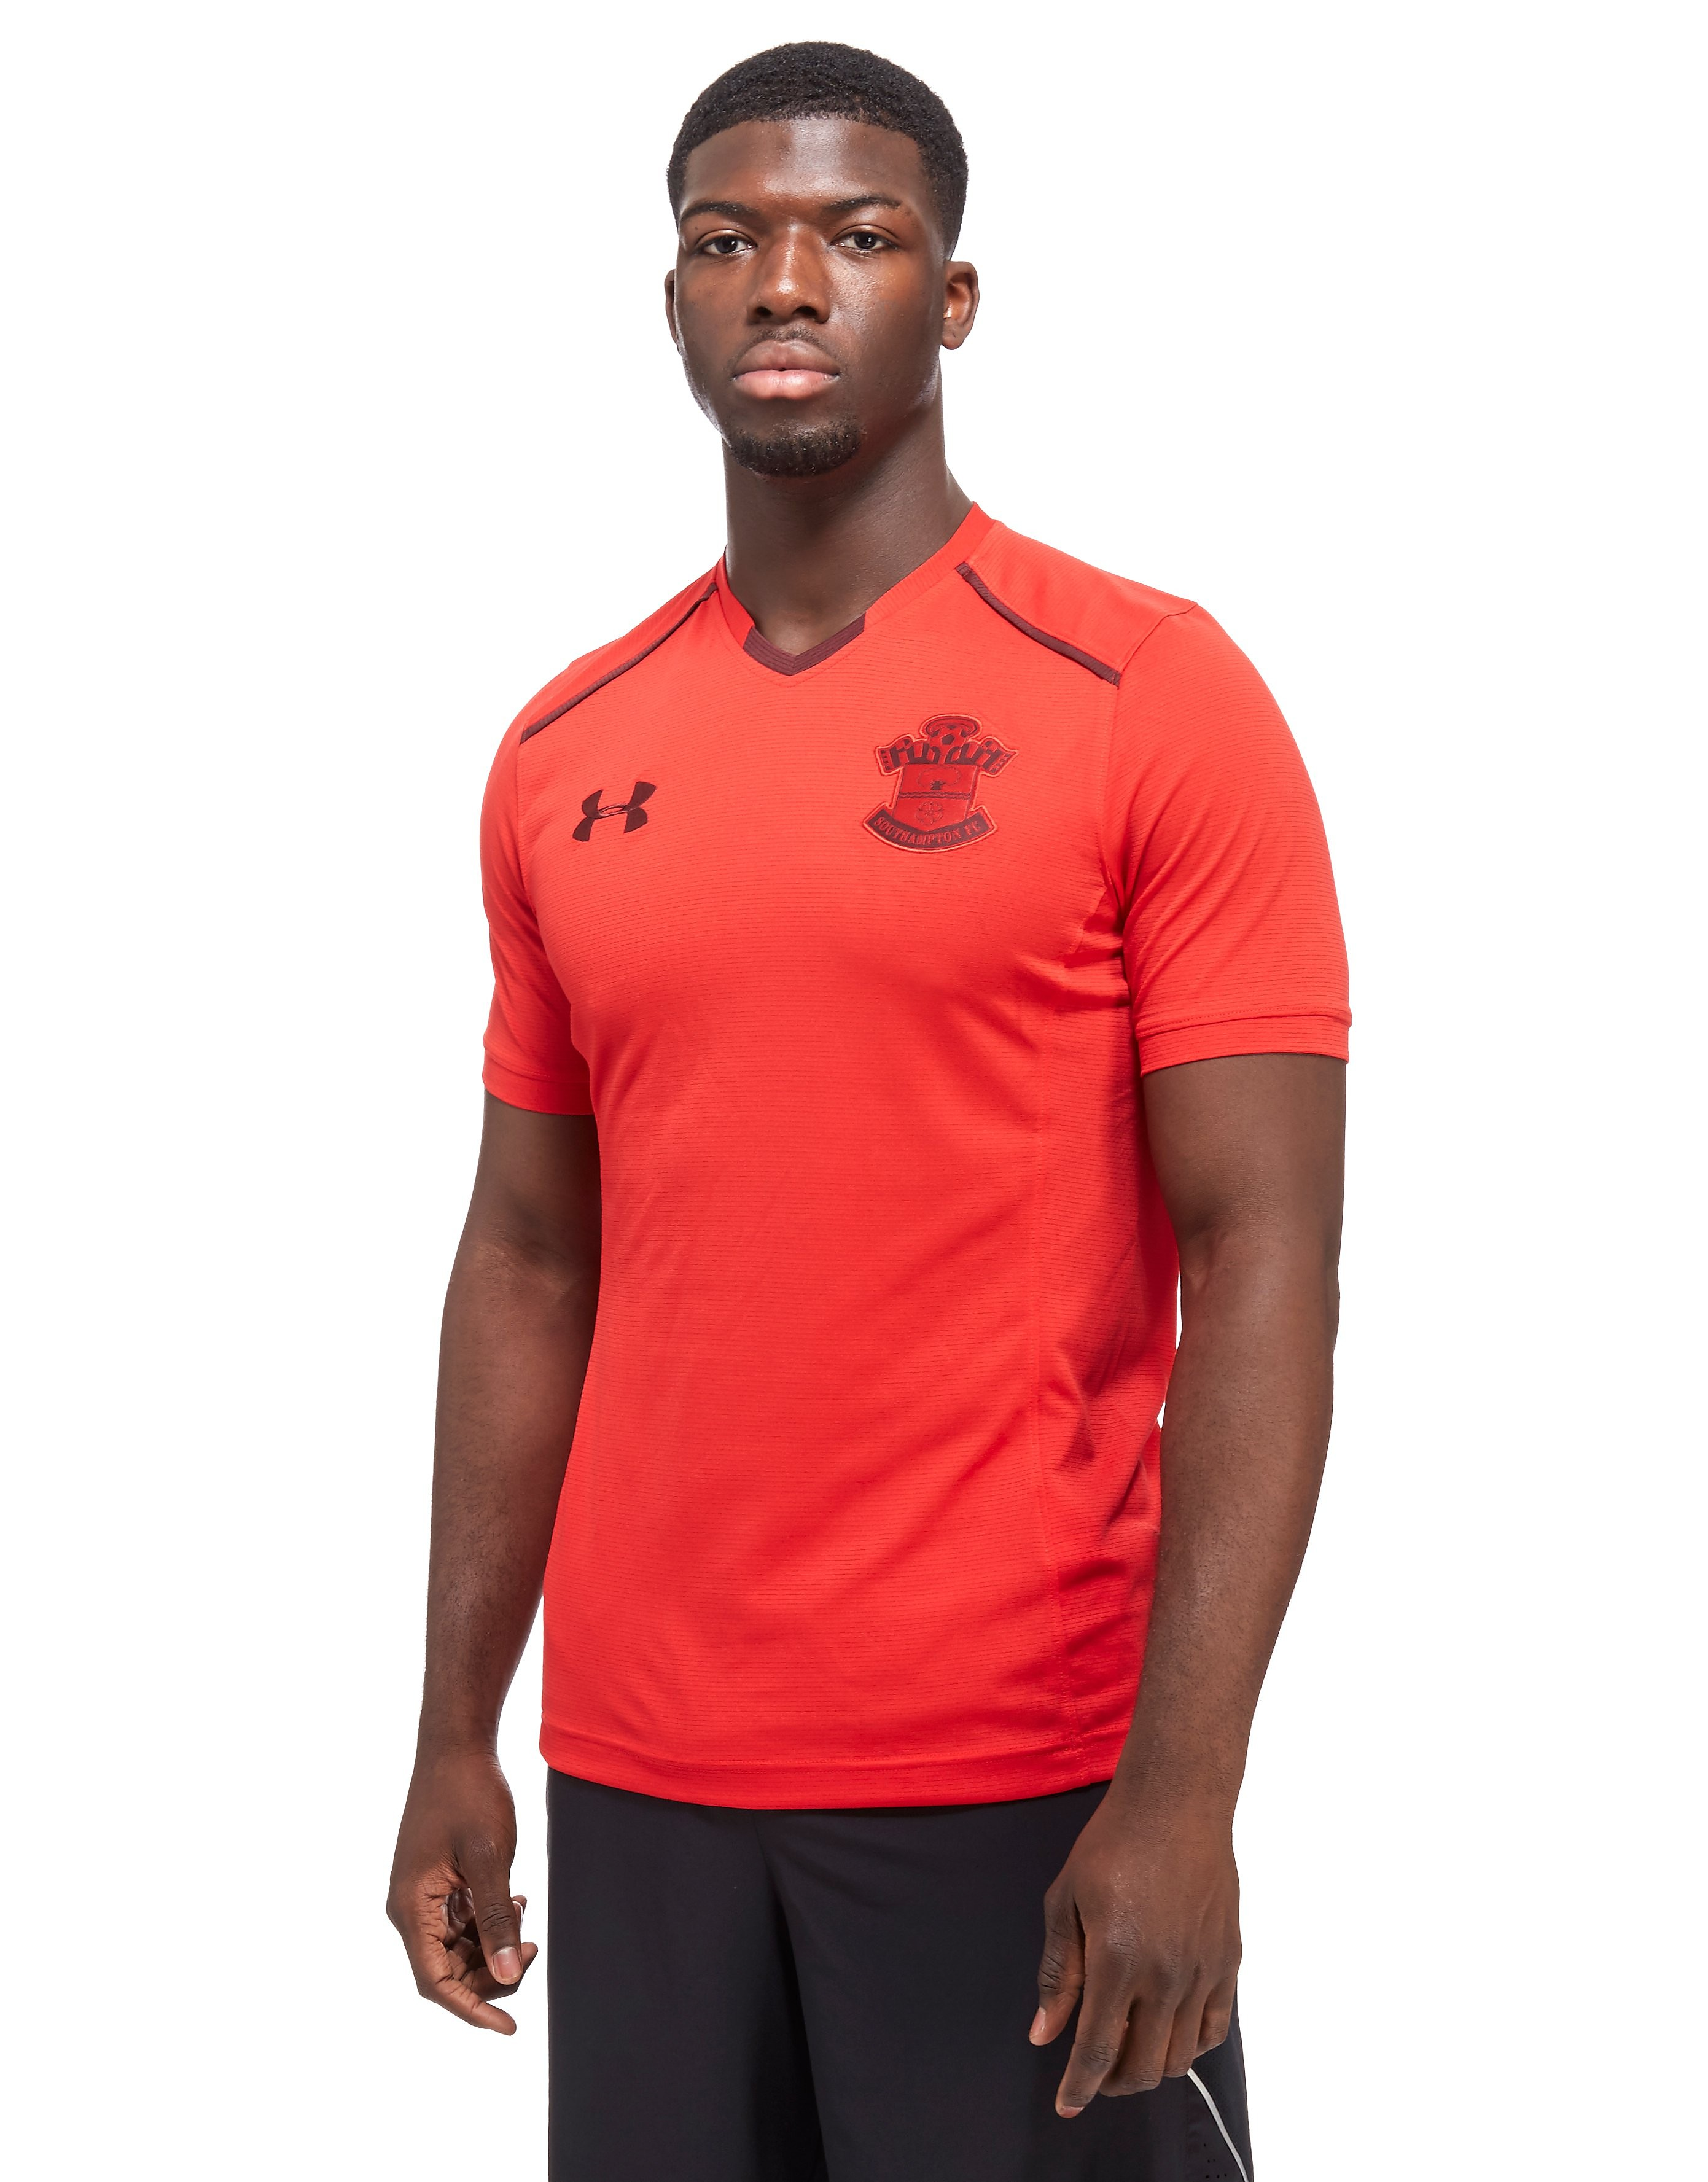 Under Armour Southampton FC 2017 Training T-Shirt